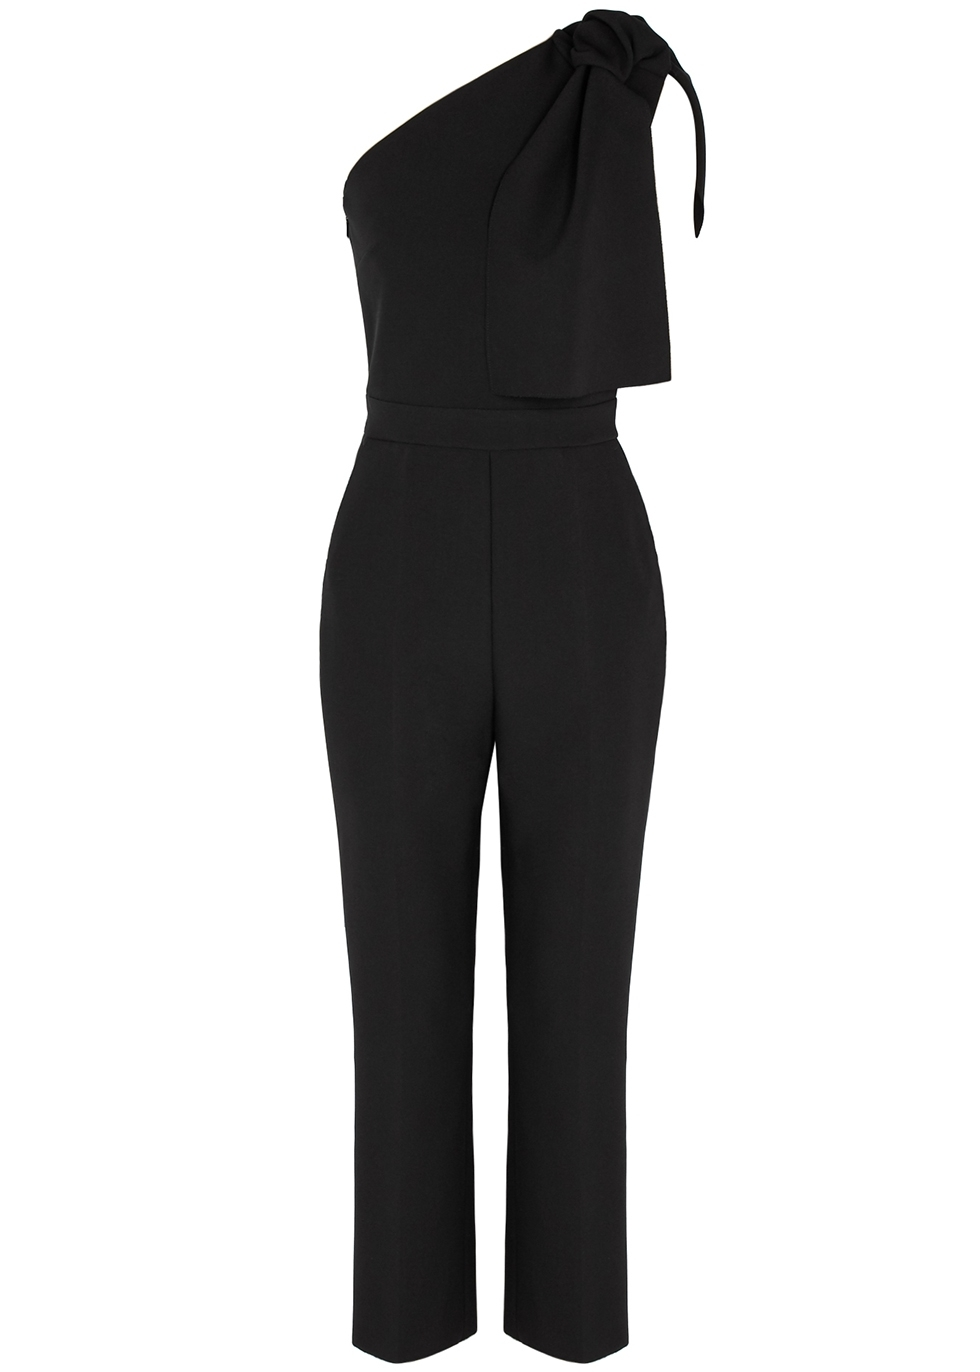 a33a045691 Designer Jumpsuits and Luxury Playsuits - Harvey Nichols